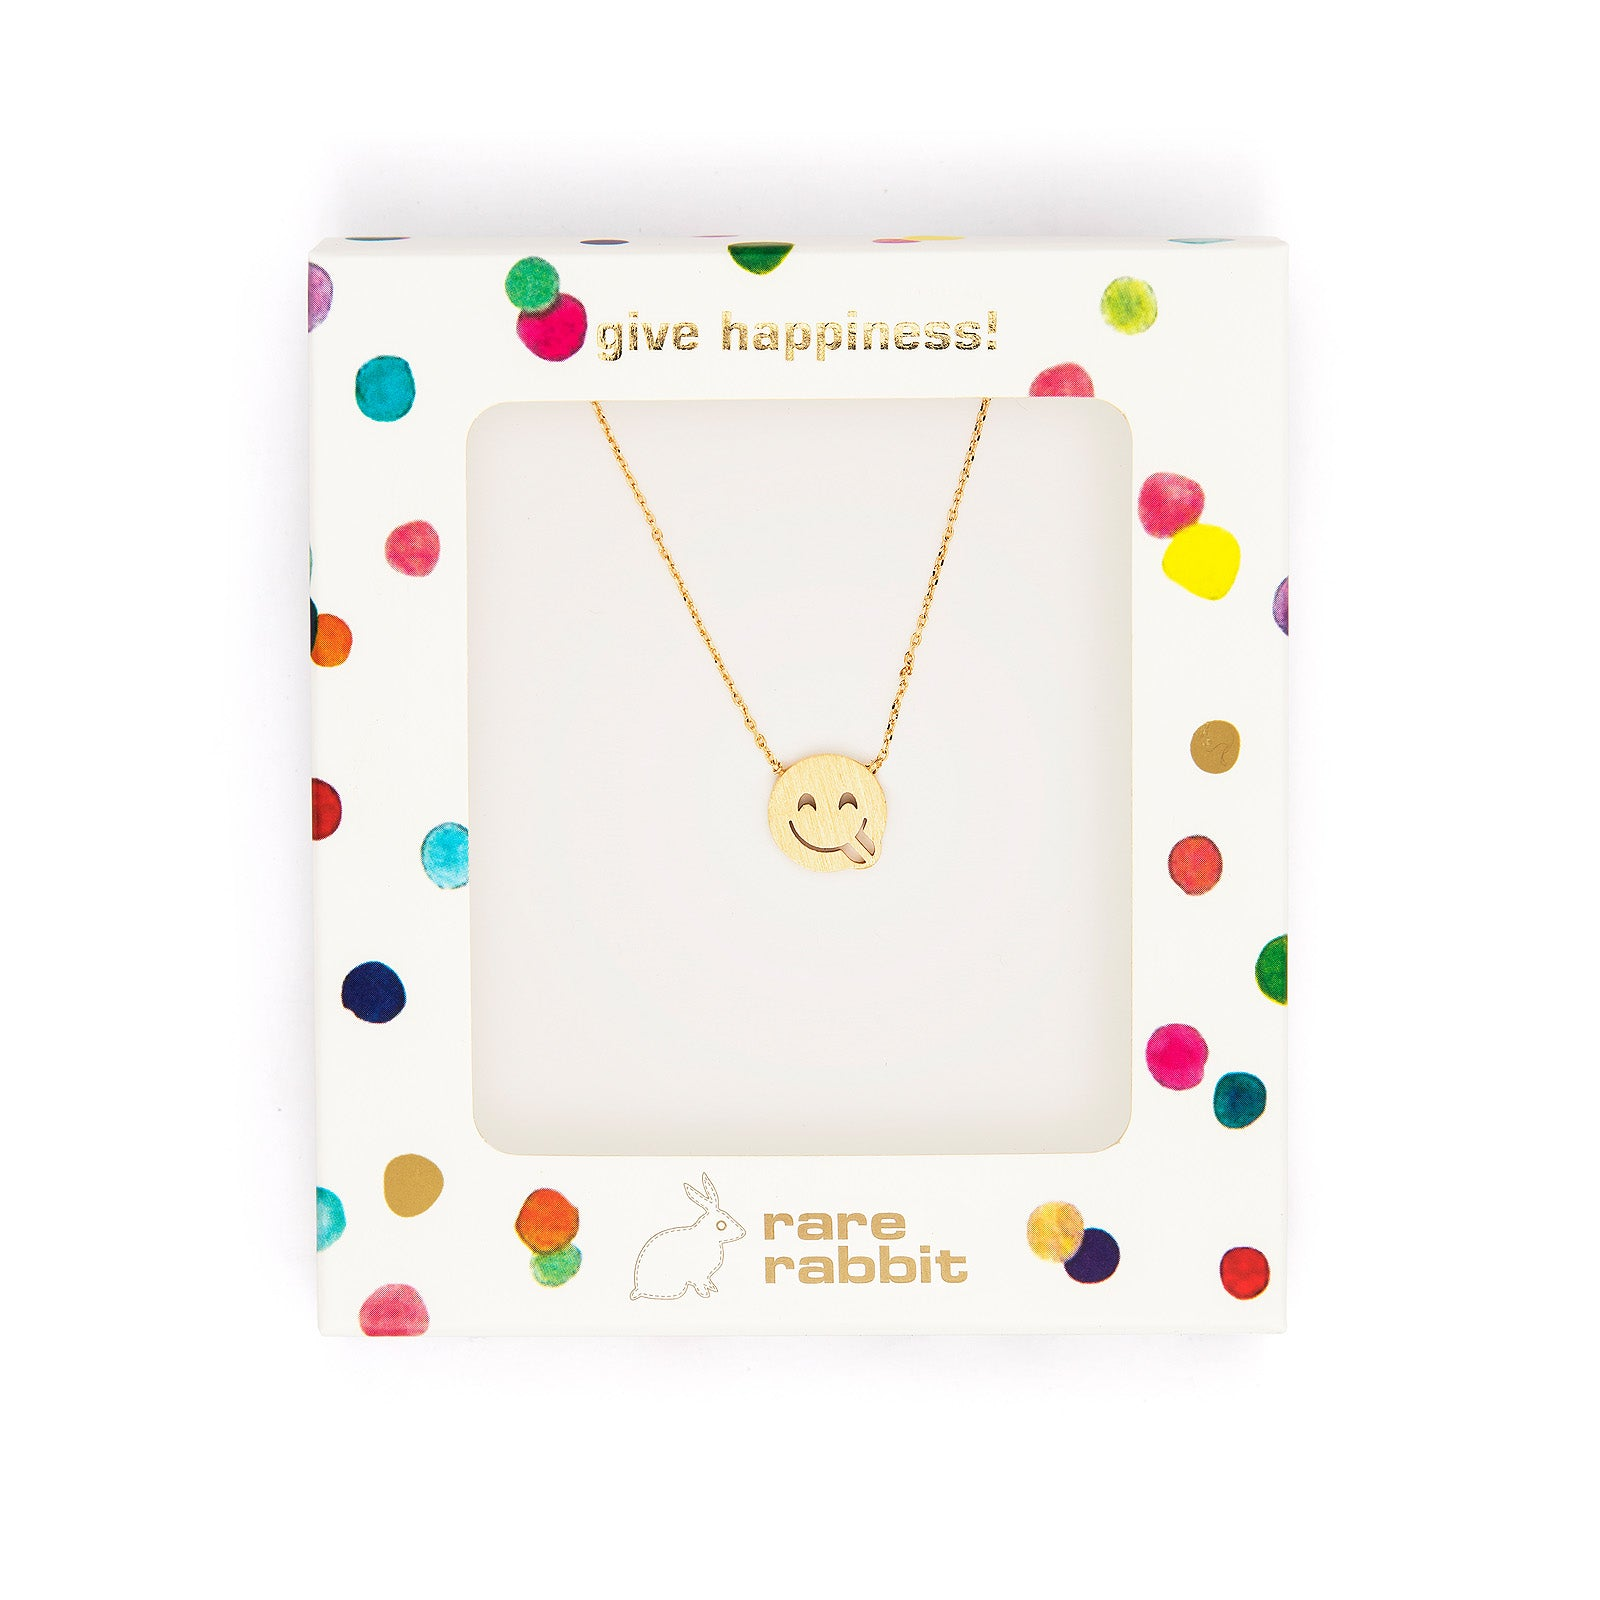 Smiley face necklace